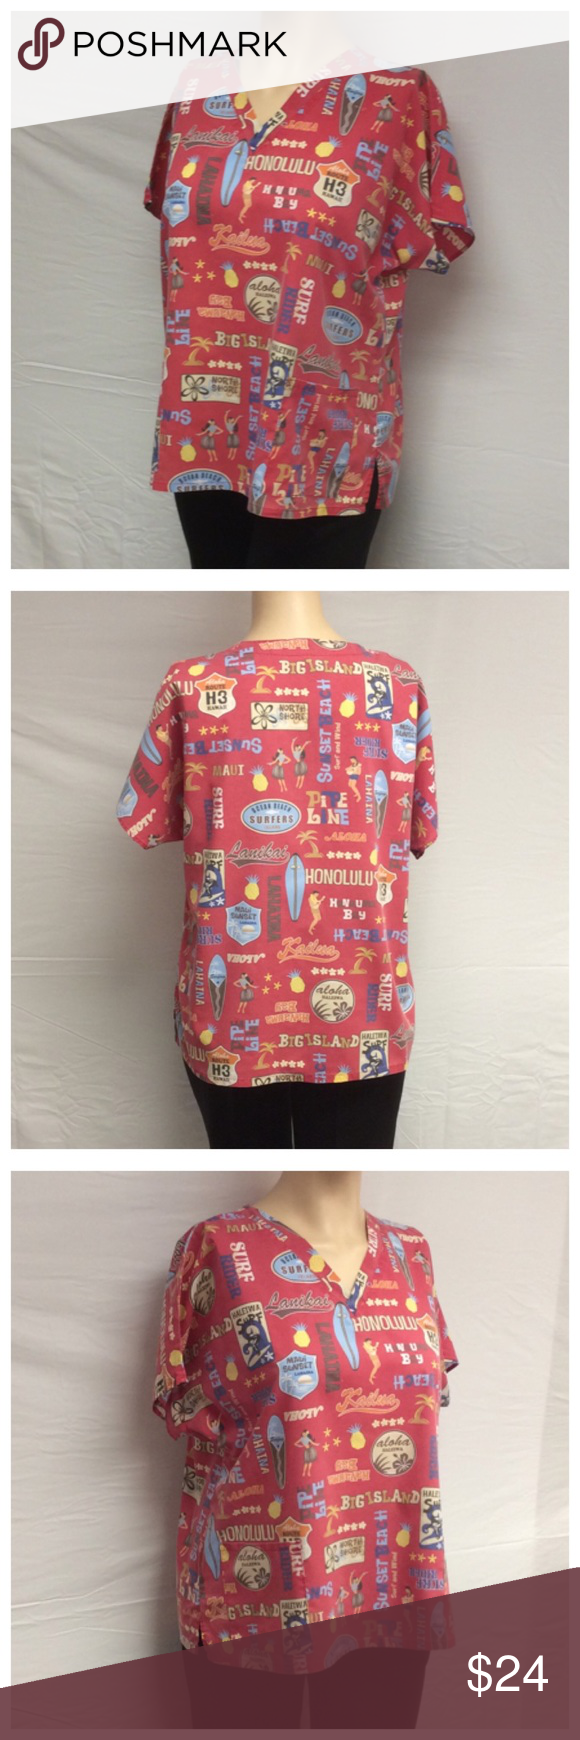 """SEW HAPPY V-NECK SCRUBS SEW HAPPY V-NECK SCRUBS, Size 3XL, 65% polyester, 35% cotton, machine wash. Front pockets, made in Hawaii. Approximate measurements are 26 1/2"""" bust laying flat, 29 1/2"""" shoulder to hem, 3 1/2"""" slits on each side. 0527 Sew Happy Tops"""